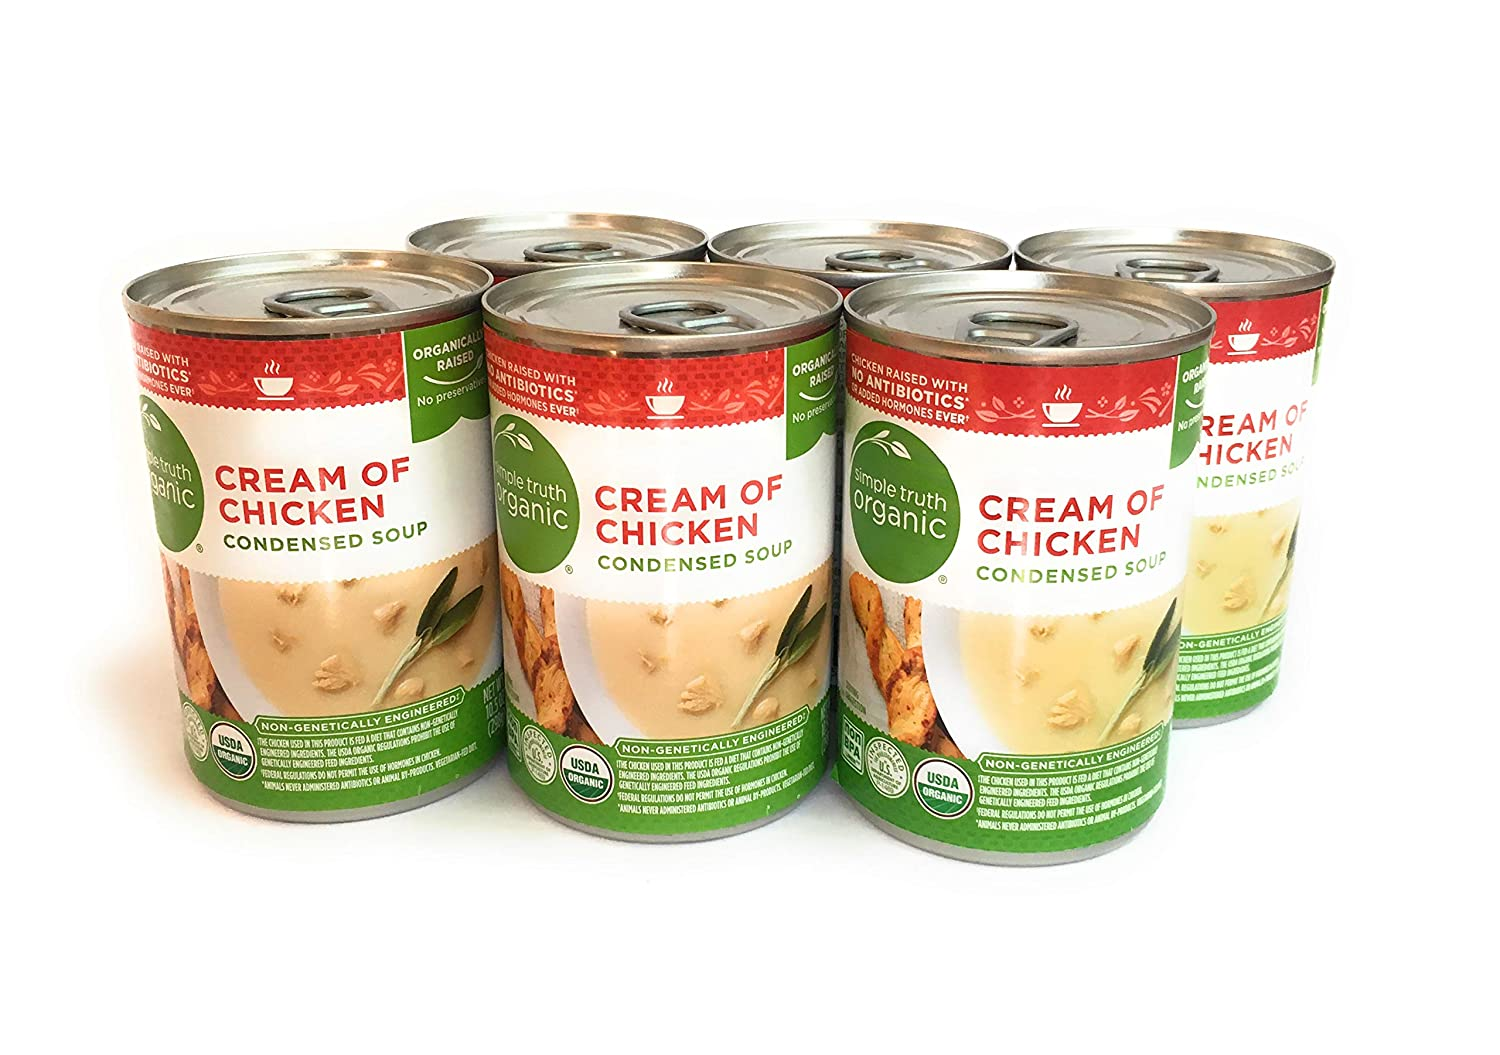 Simple Truth Organic Cream of Chicken Condensed Soup, 10.5 Ounce Can (Pack of 6)